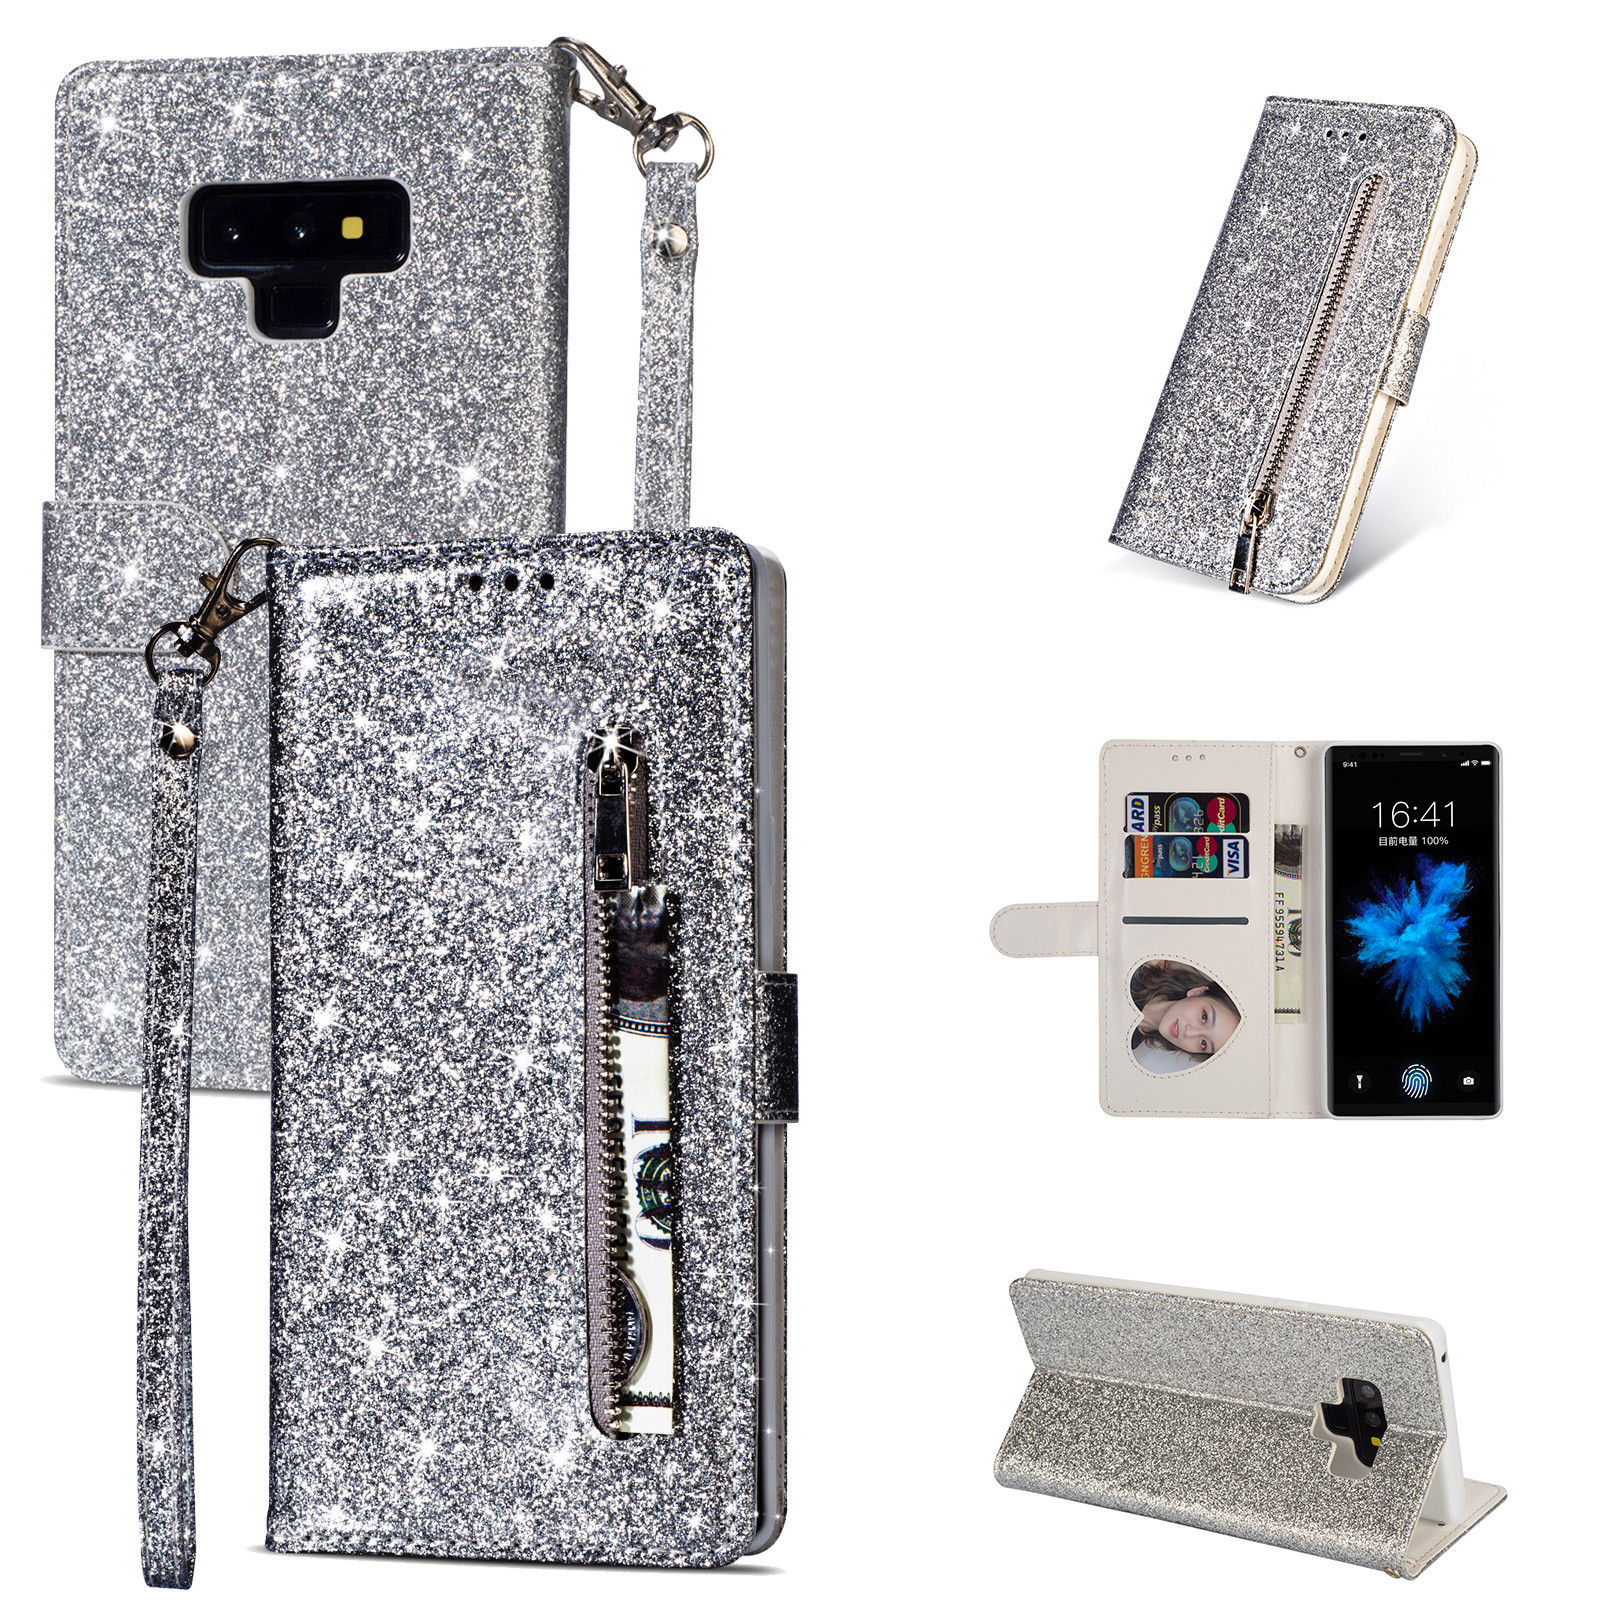 HTB1XczEdf1H3KVjSZFBq6zSMXXab Bling Glitter Case For Samsung Galaxy S10e Note 8 9 S10 Plus S9 S8 Plus S7 Edge S6 Leather Flip Stand Zipper Wallet Cover Coque